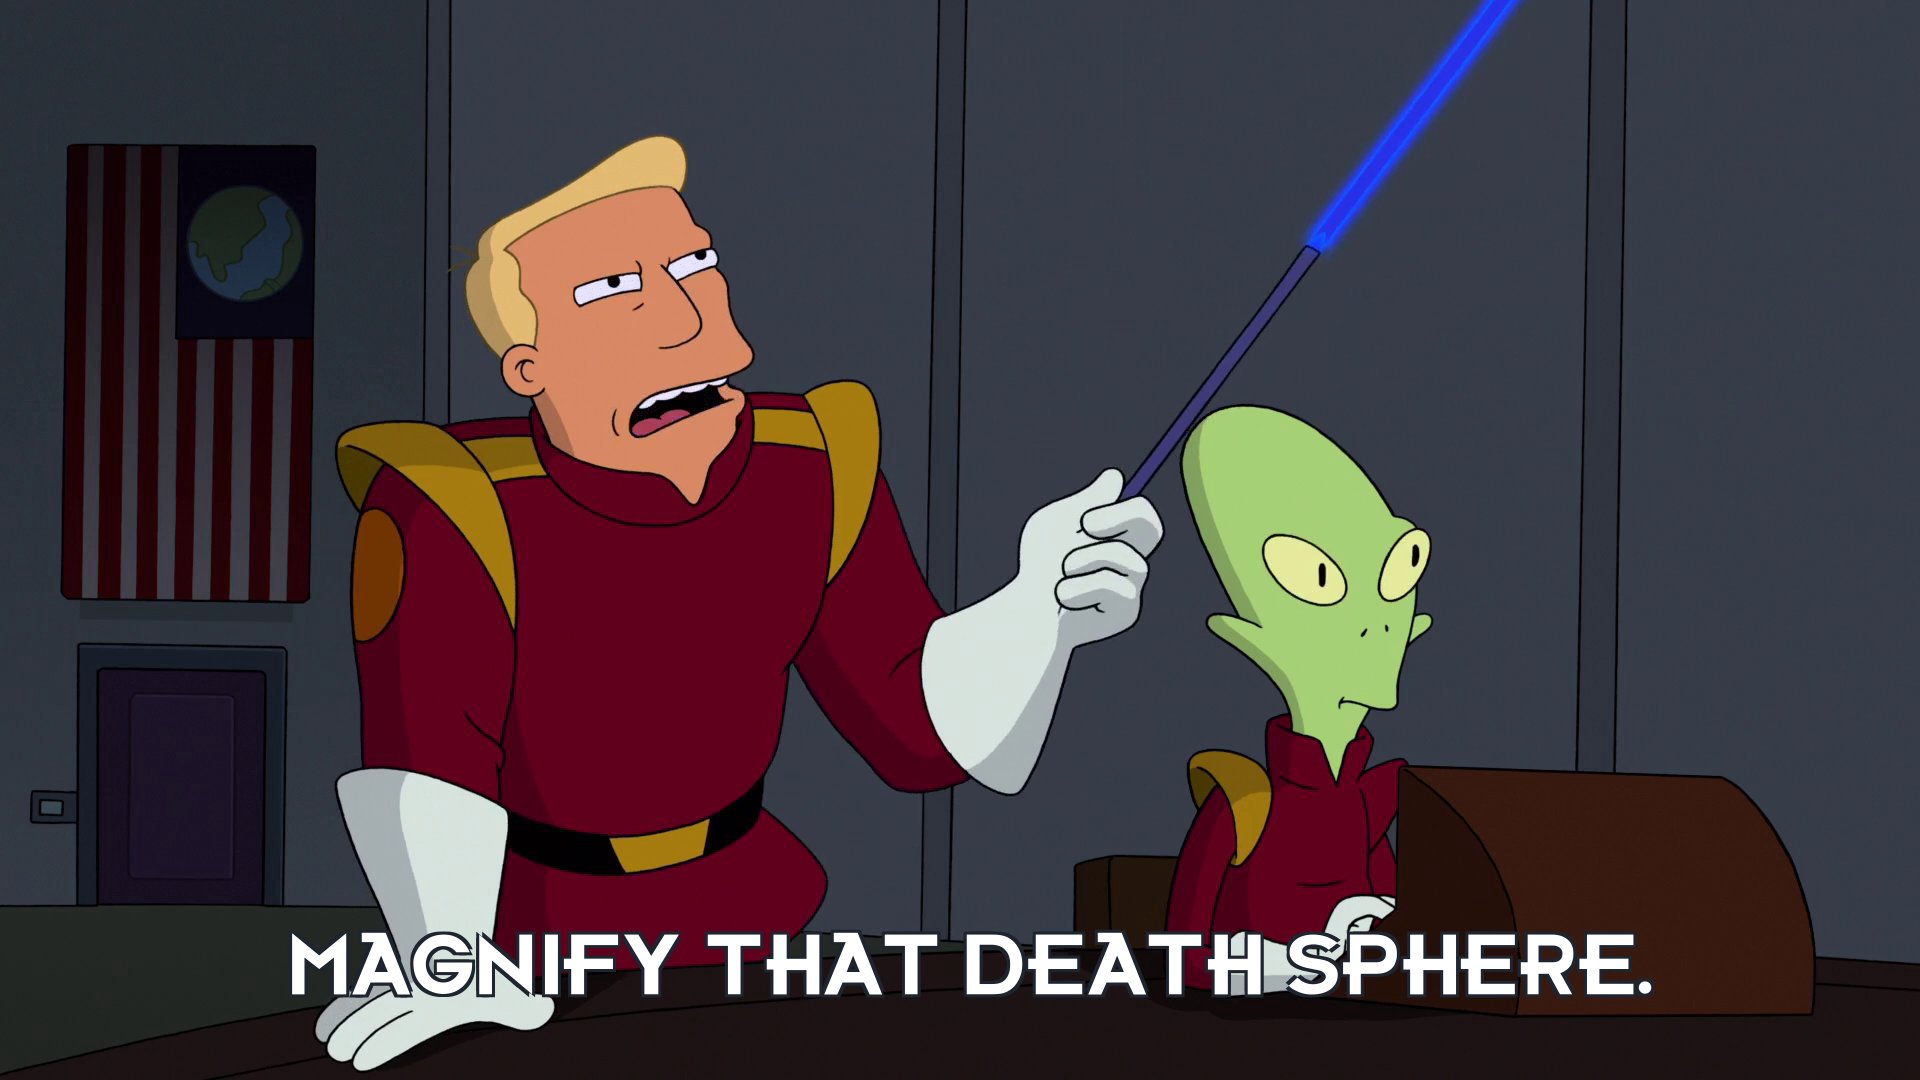 Zapp Brannigan: Magnify that death sphere.